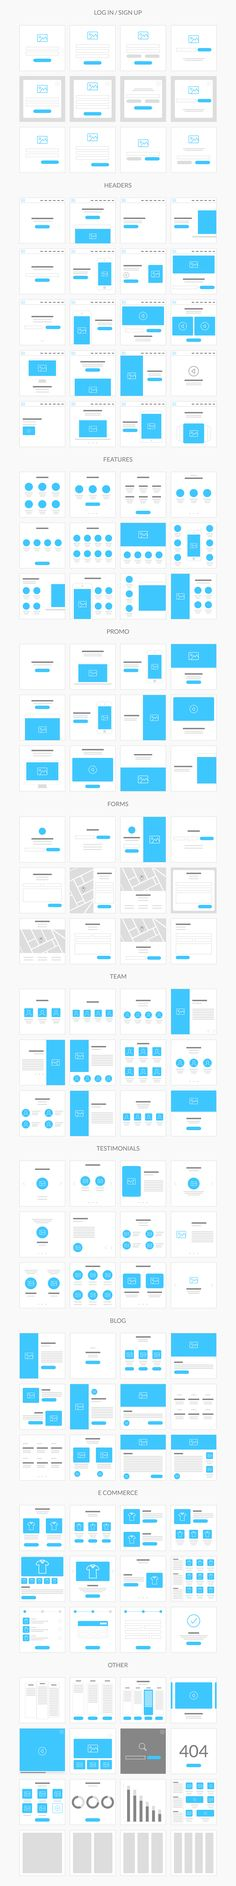 Flowy is made with fast workflow in mind, so we created 236 ready to use templates, built on the 1170 grid and in Photoshop file format. You can create flowcharts for both mobile and web projects of any complexity and show them to your team or clients. Web And App Design, Minimal Web Design, Layout Design, Design Sites, Interaktives Design, Web Design Tips, The Design Files, Web Layout, Tool Design